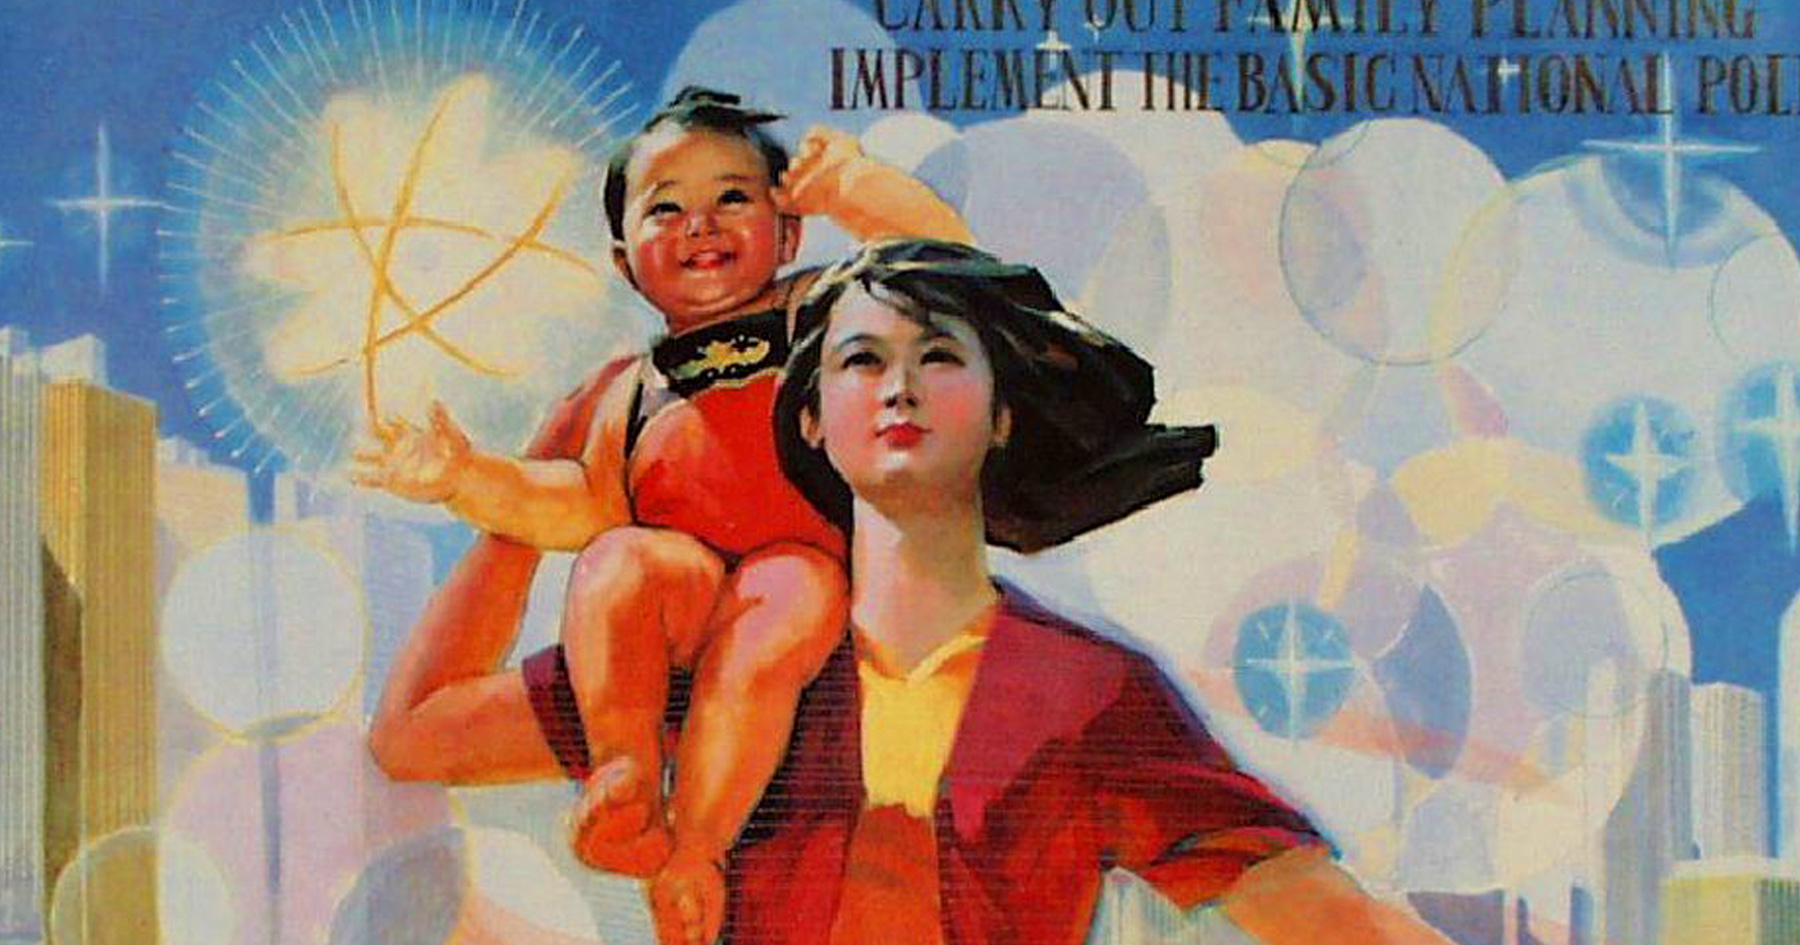 one child policy, china, family planning, communist, five year plan